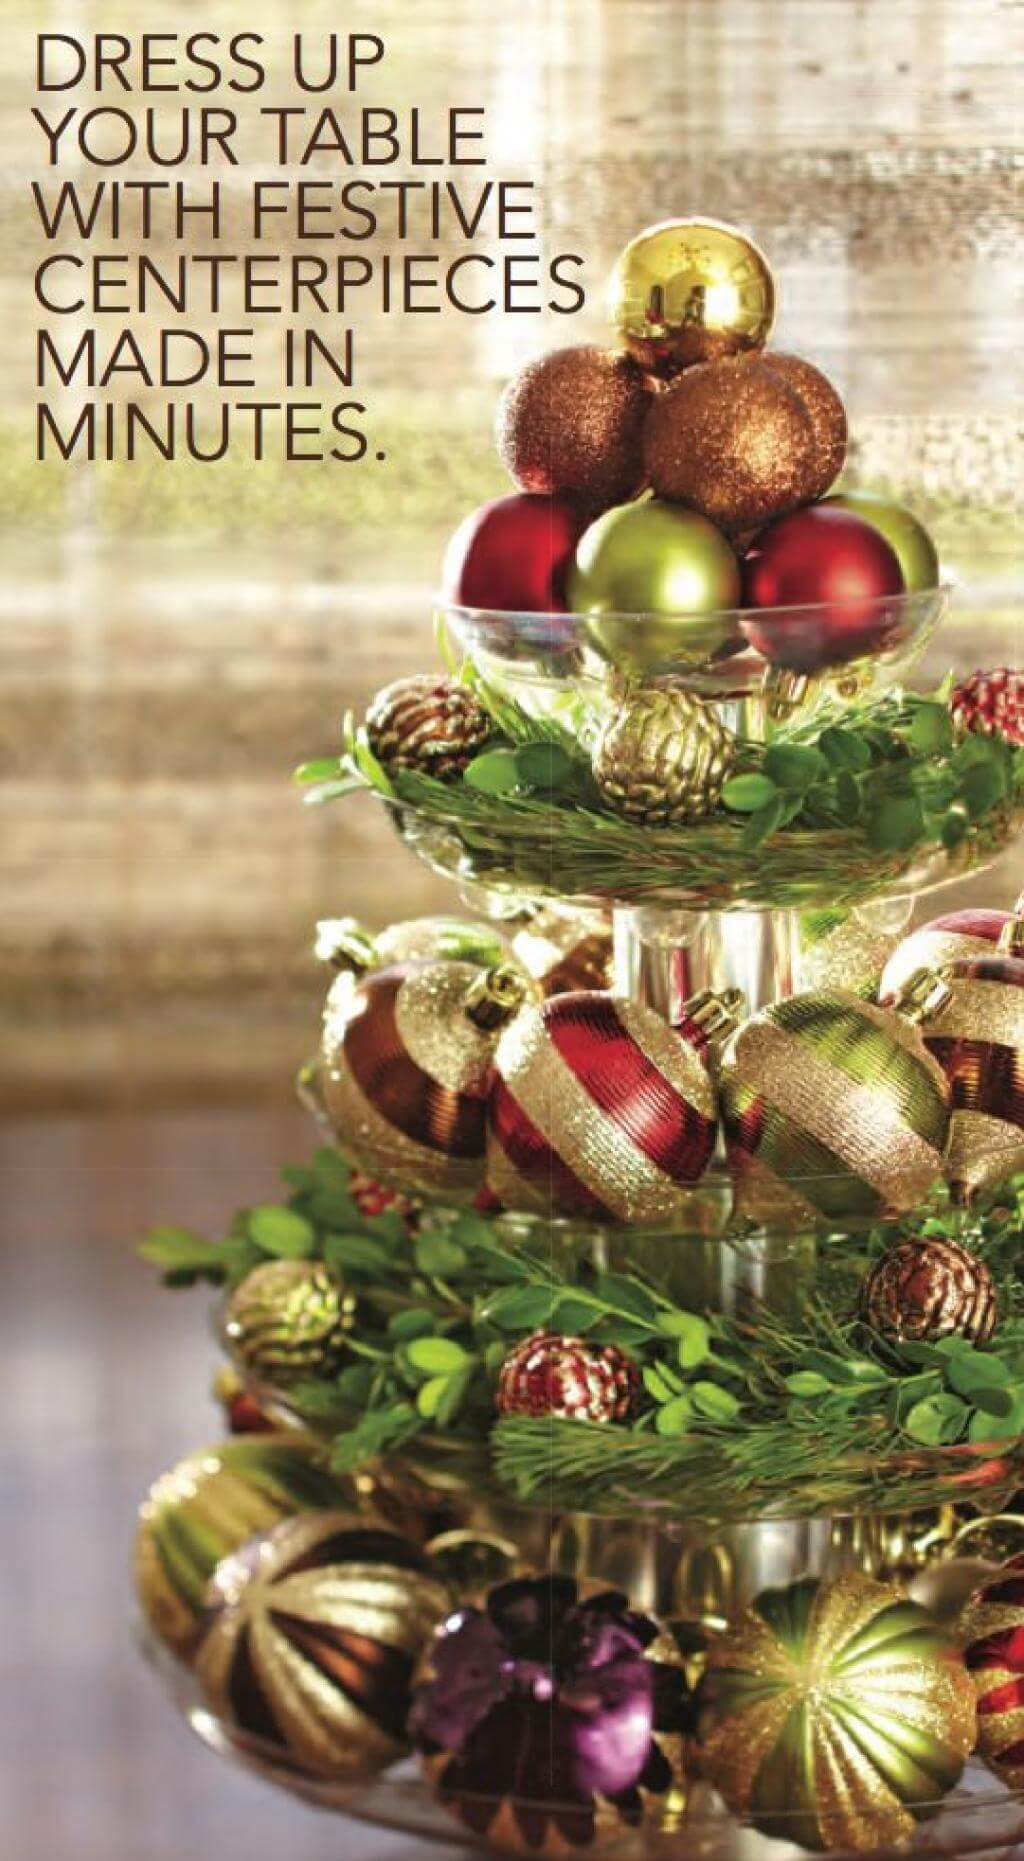 Five-tier Ornament Centerpiece With Boxwood Greenery